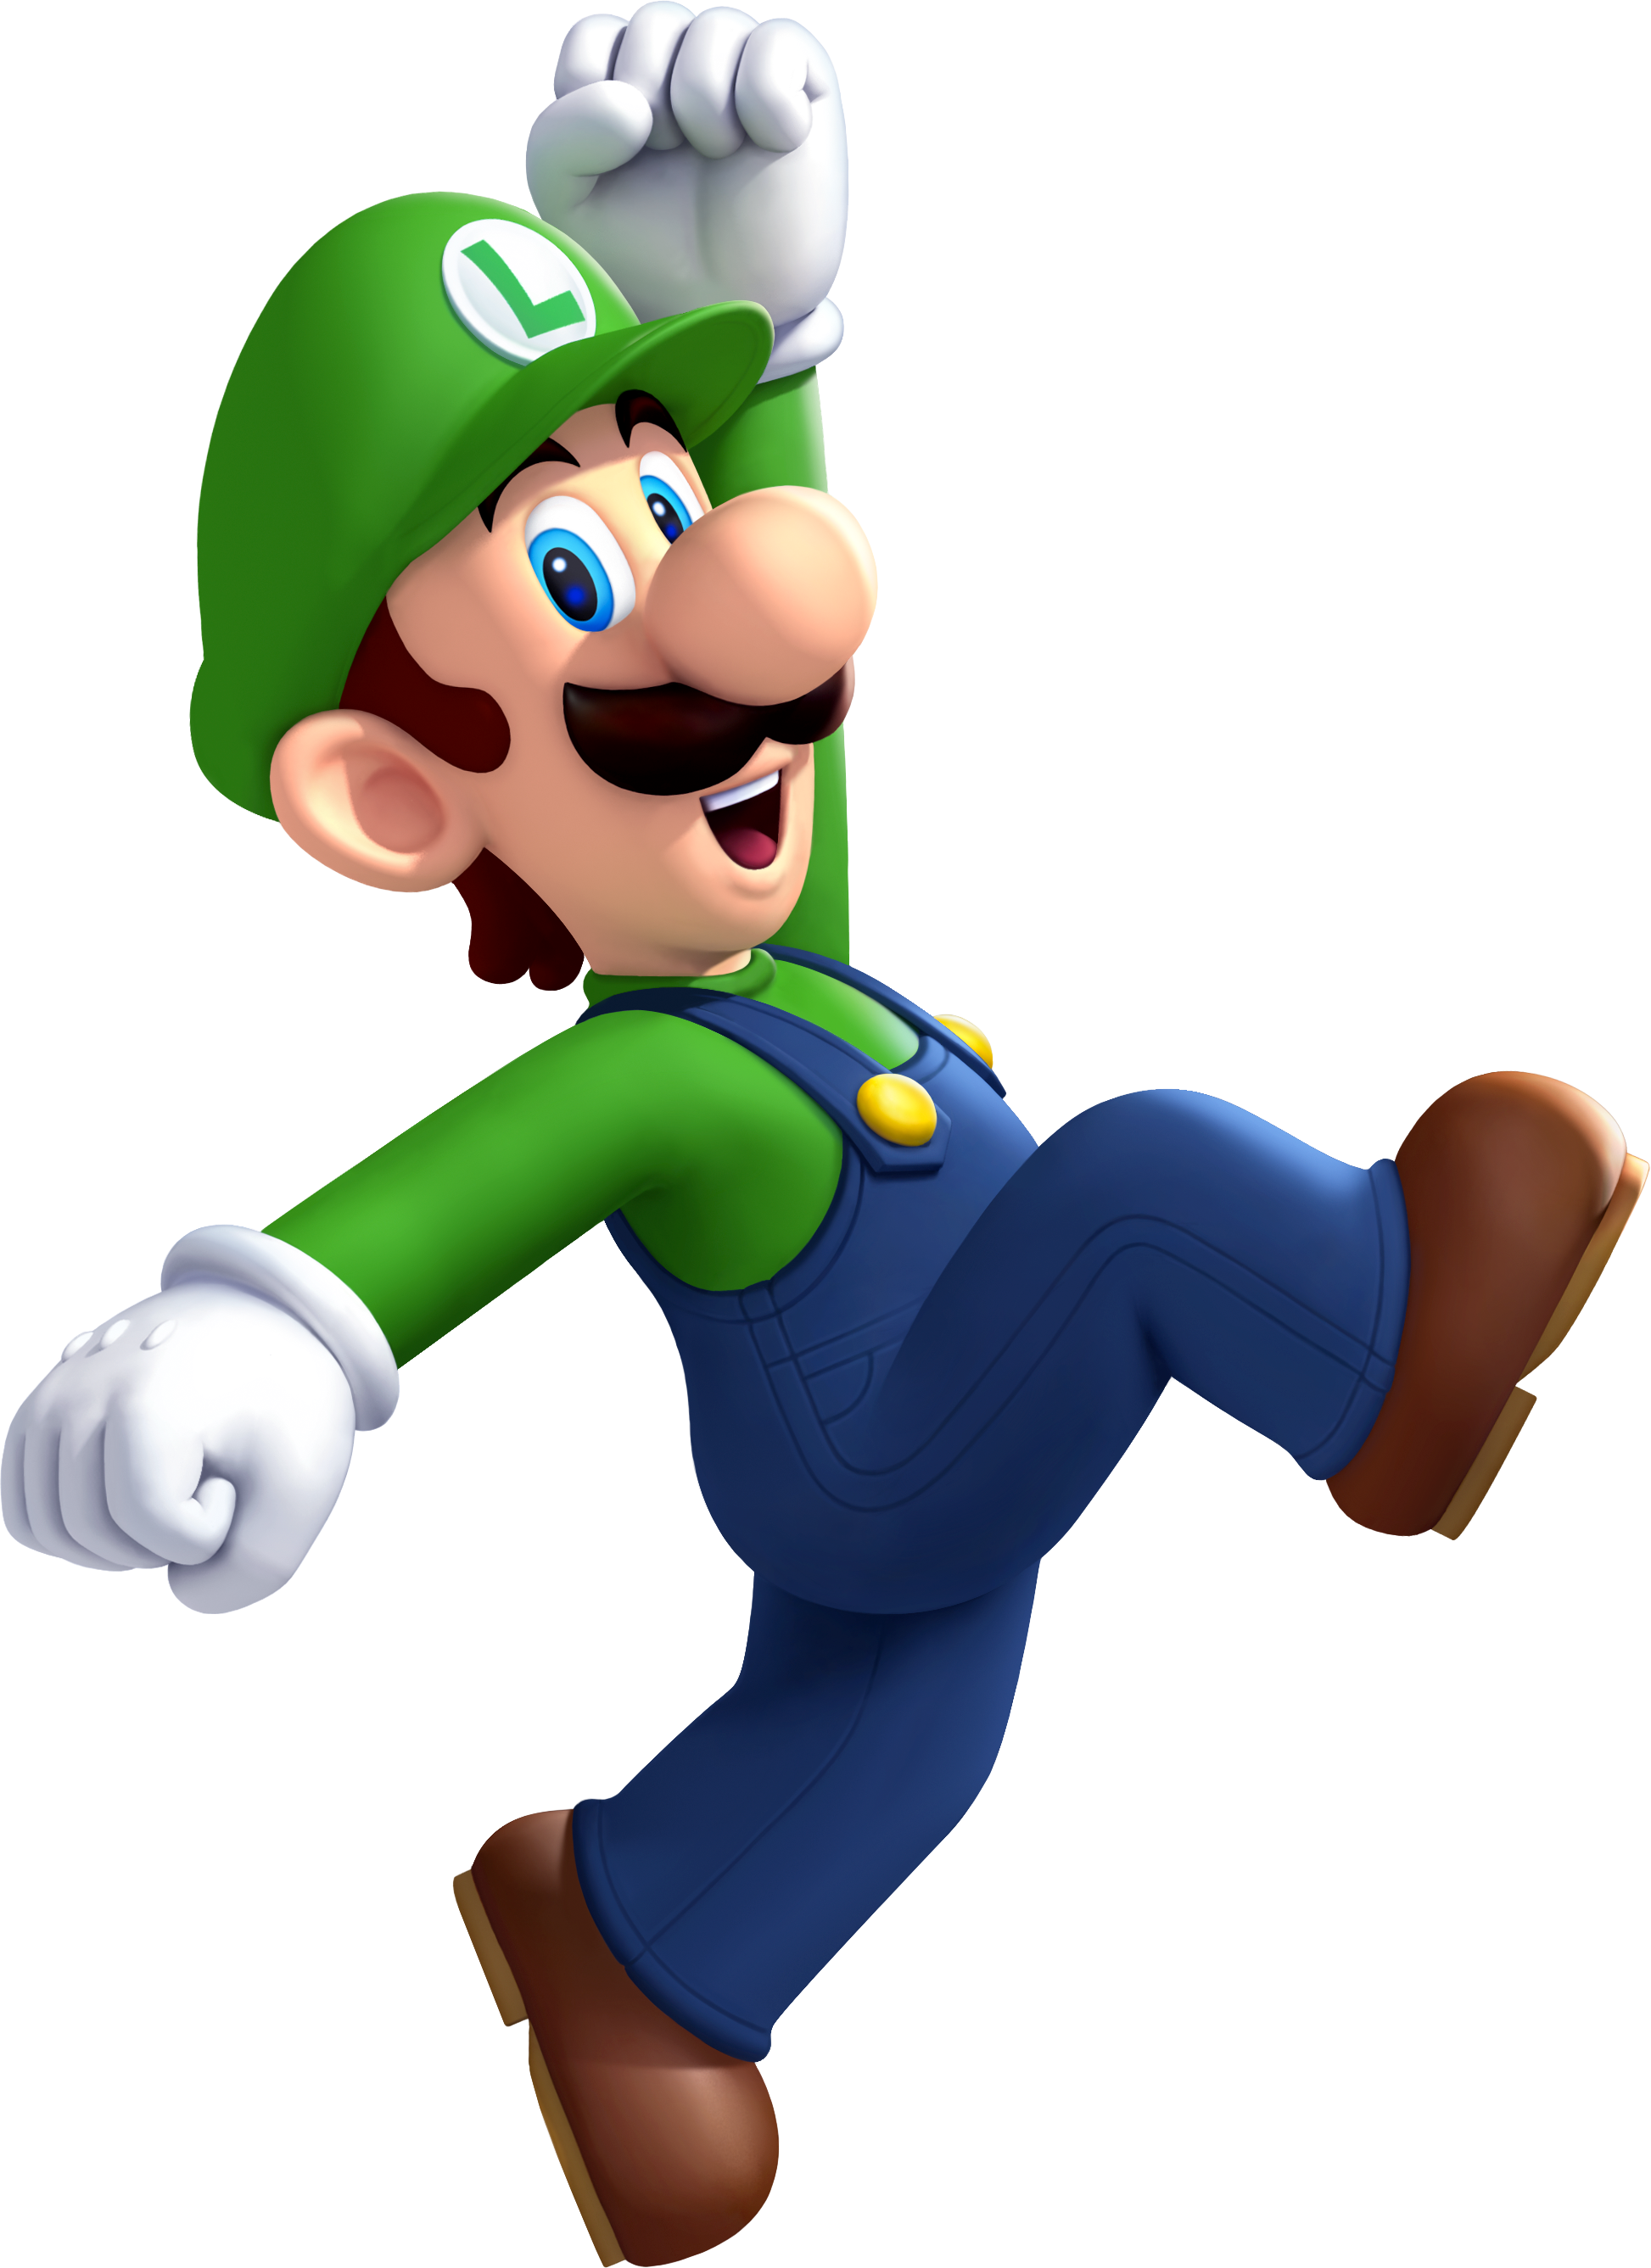 Luigi (recoloration original and SSB) by Banjo2015 on DeviantArt